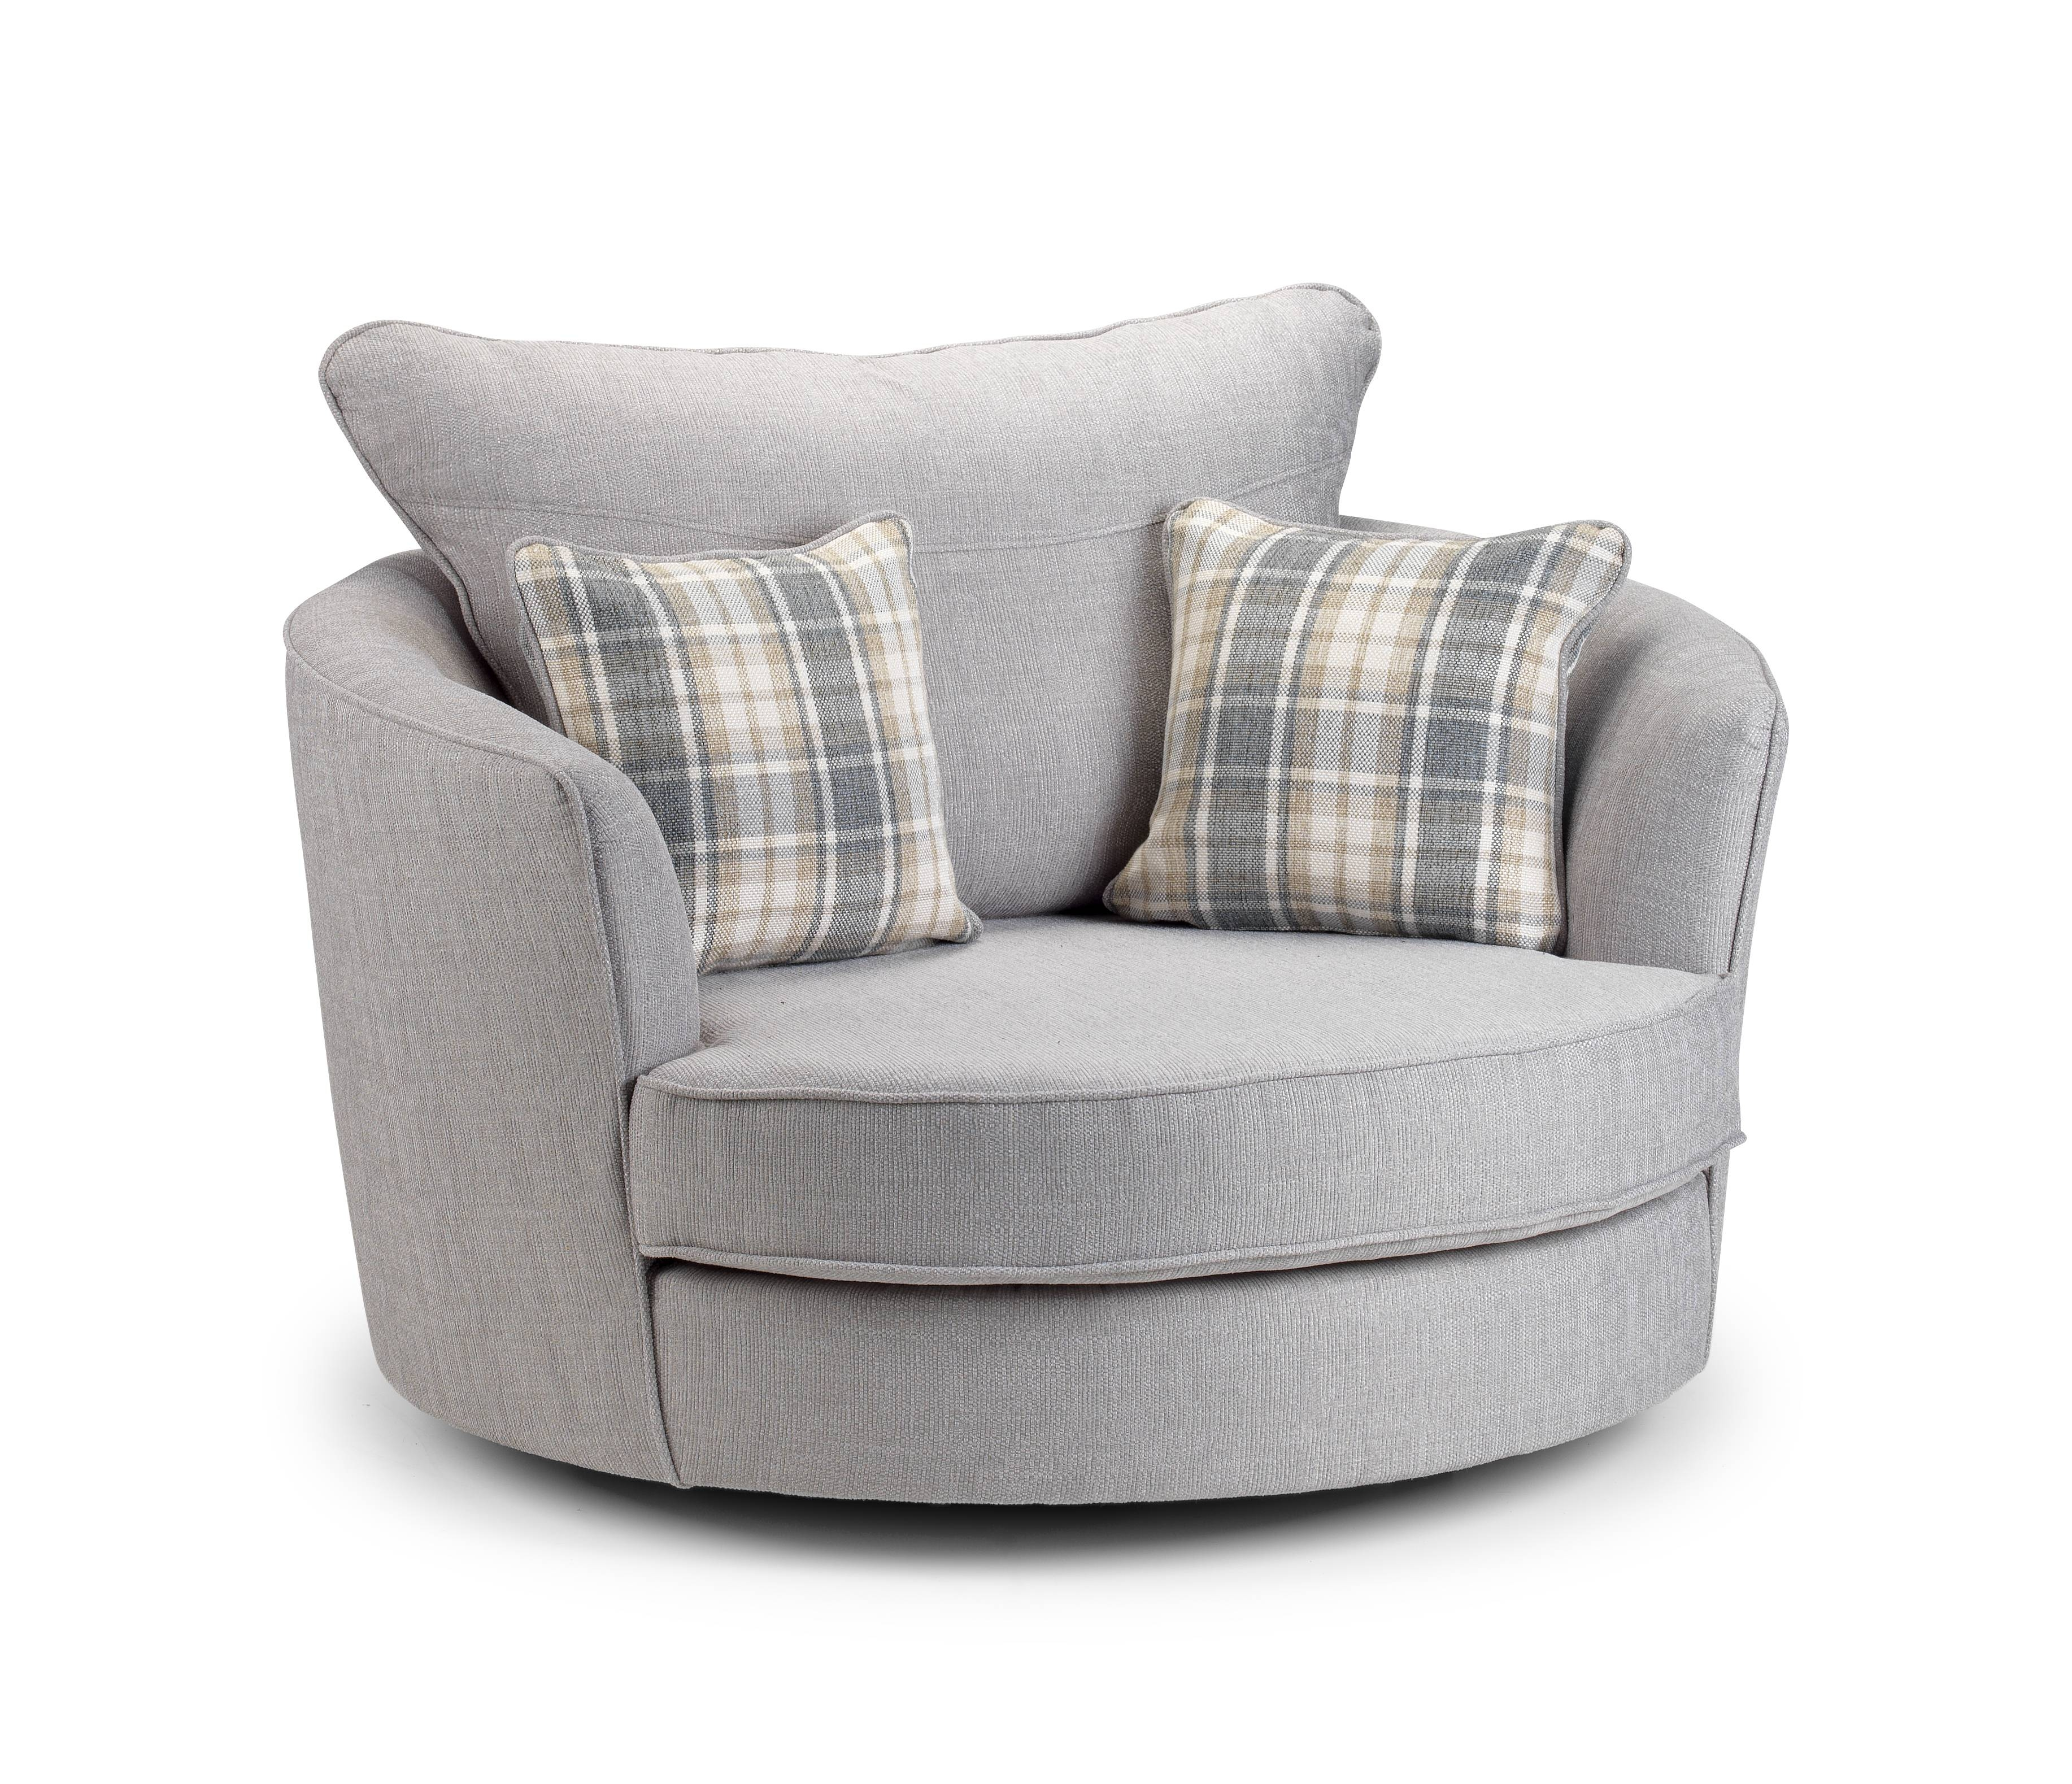 Sofas Center : Shocking Round Sofa Chair Picture Concept Nice Intended For Chair Sofas (View 21 of 30)